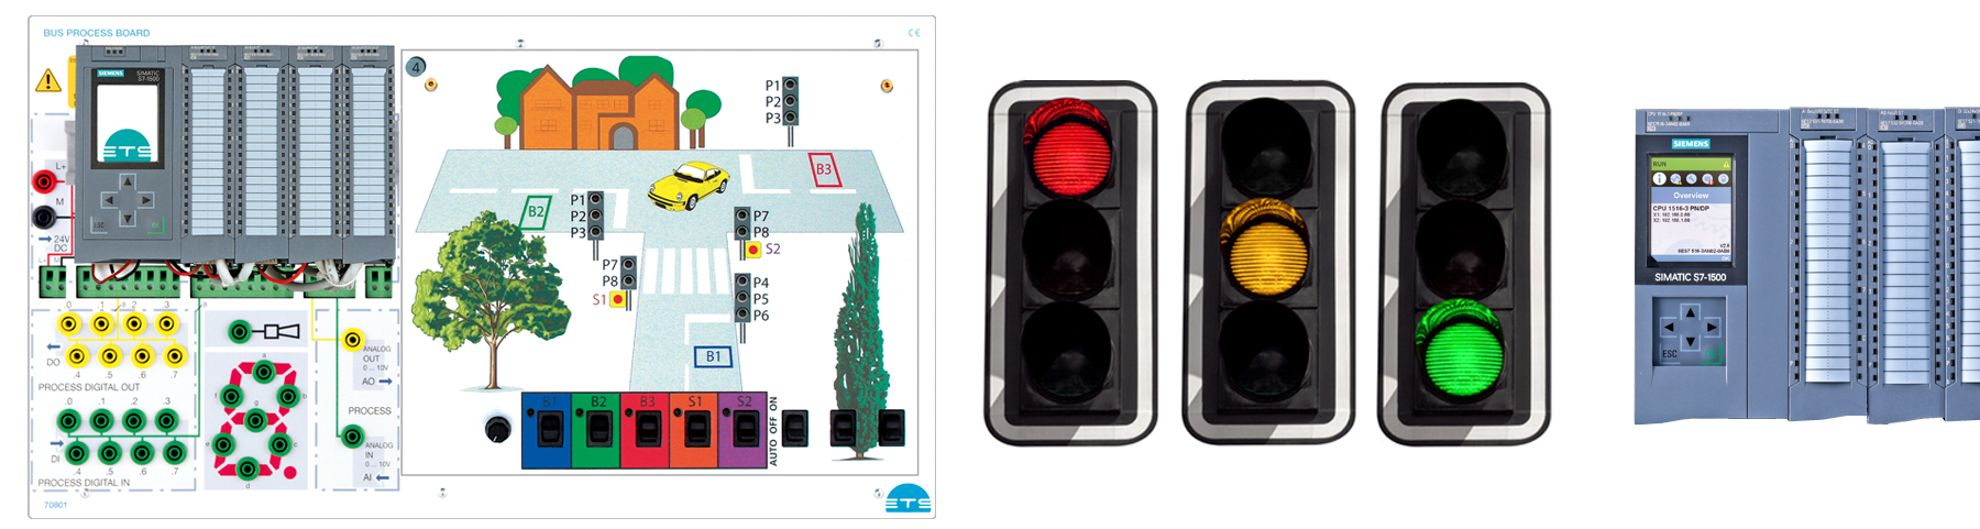 Plant Simulation - Bus Process Board with SPS